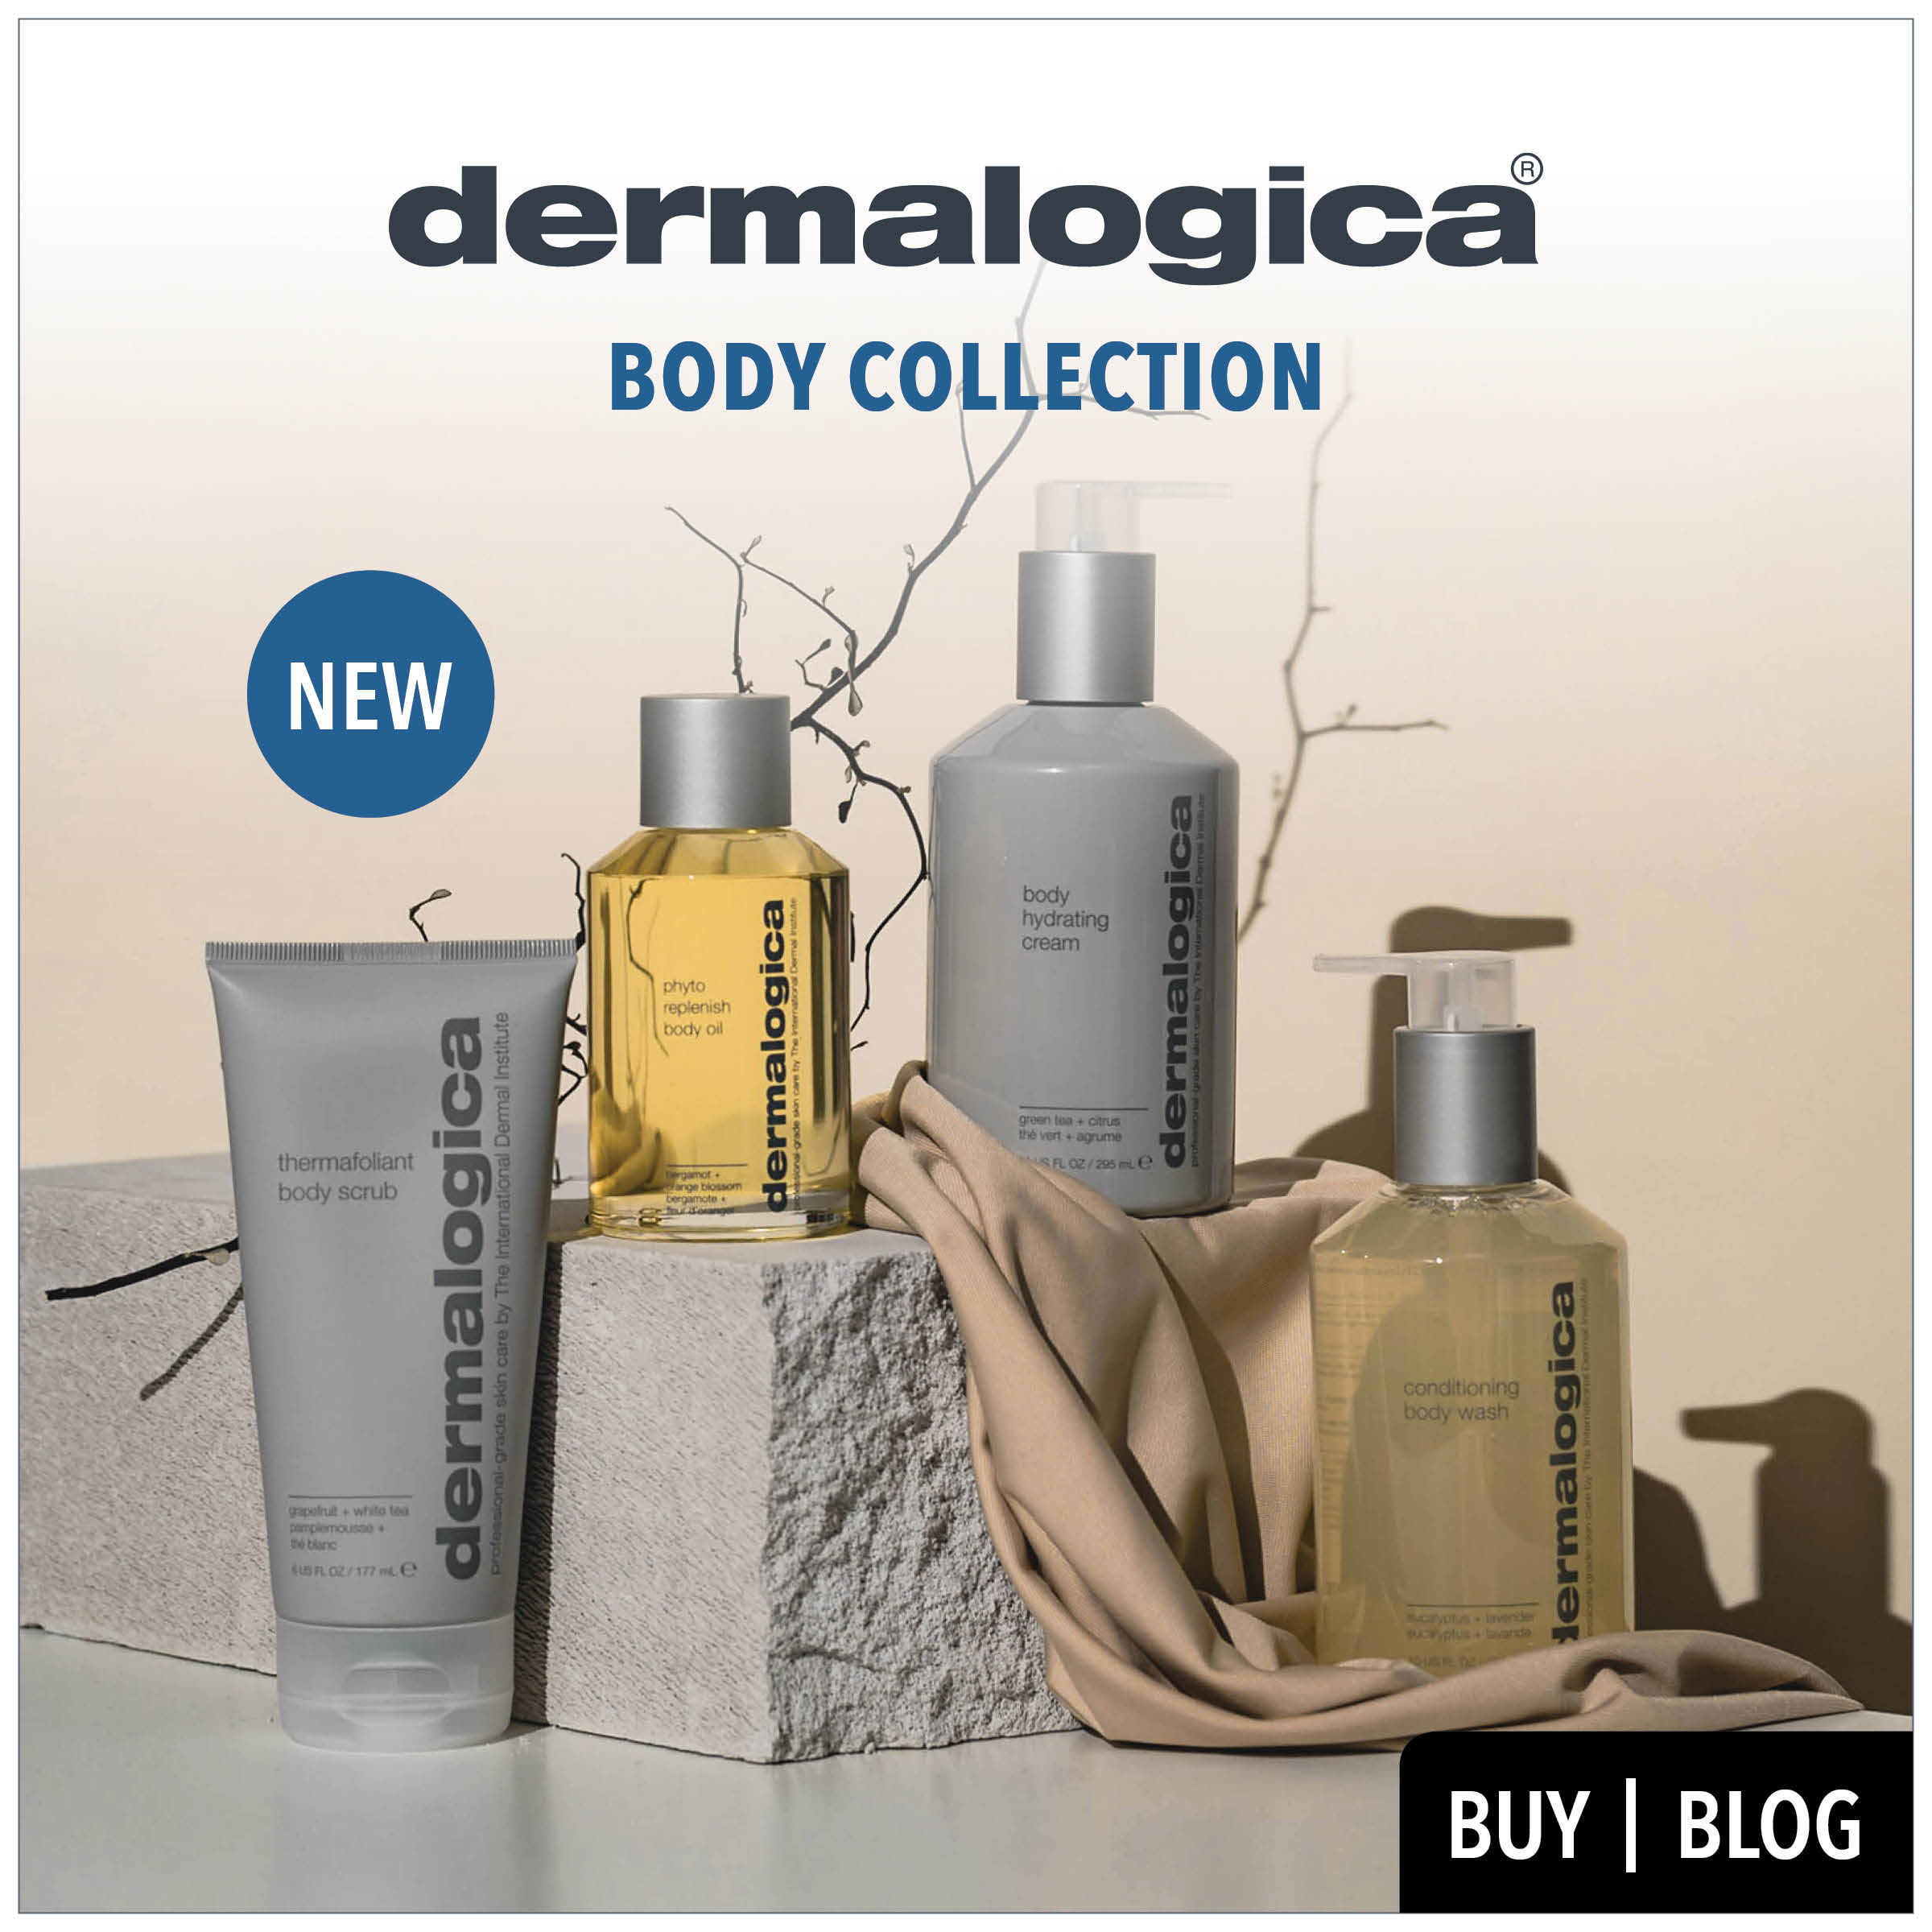 new dermalogica body collection from dermalogica